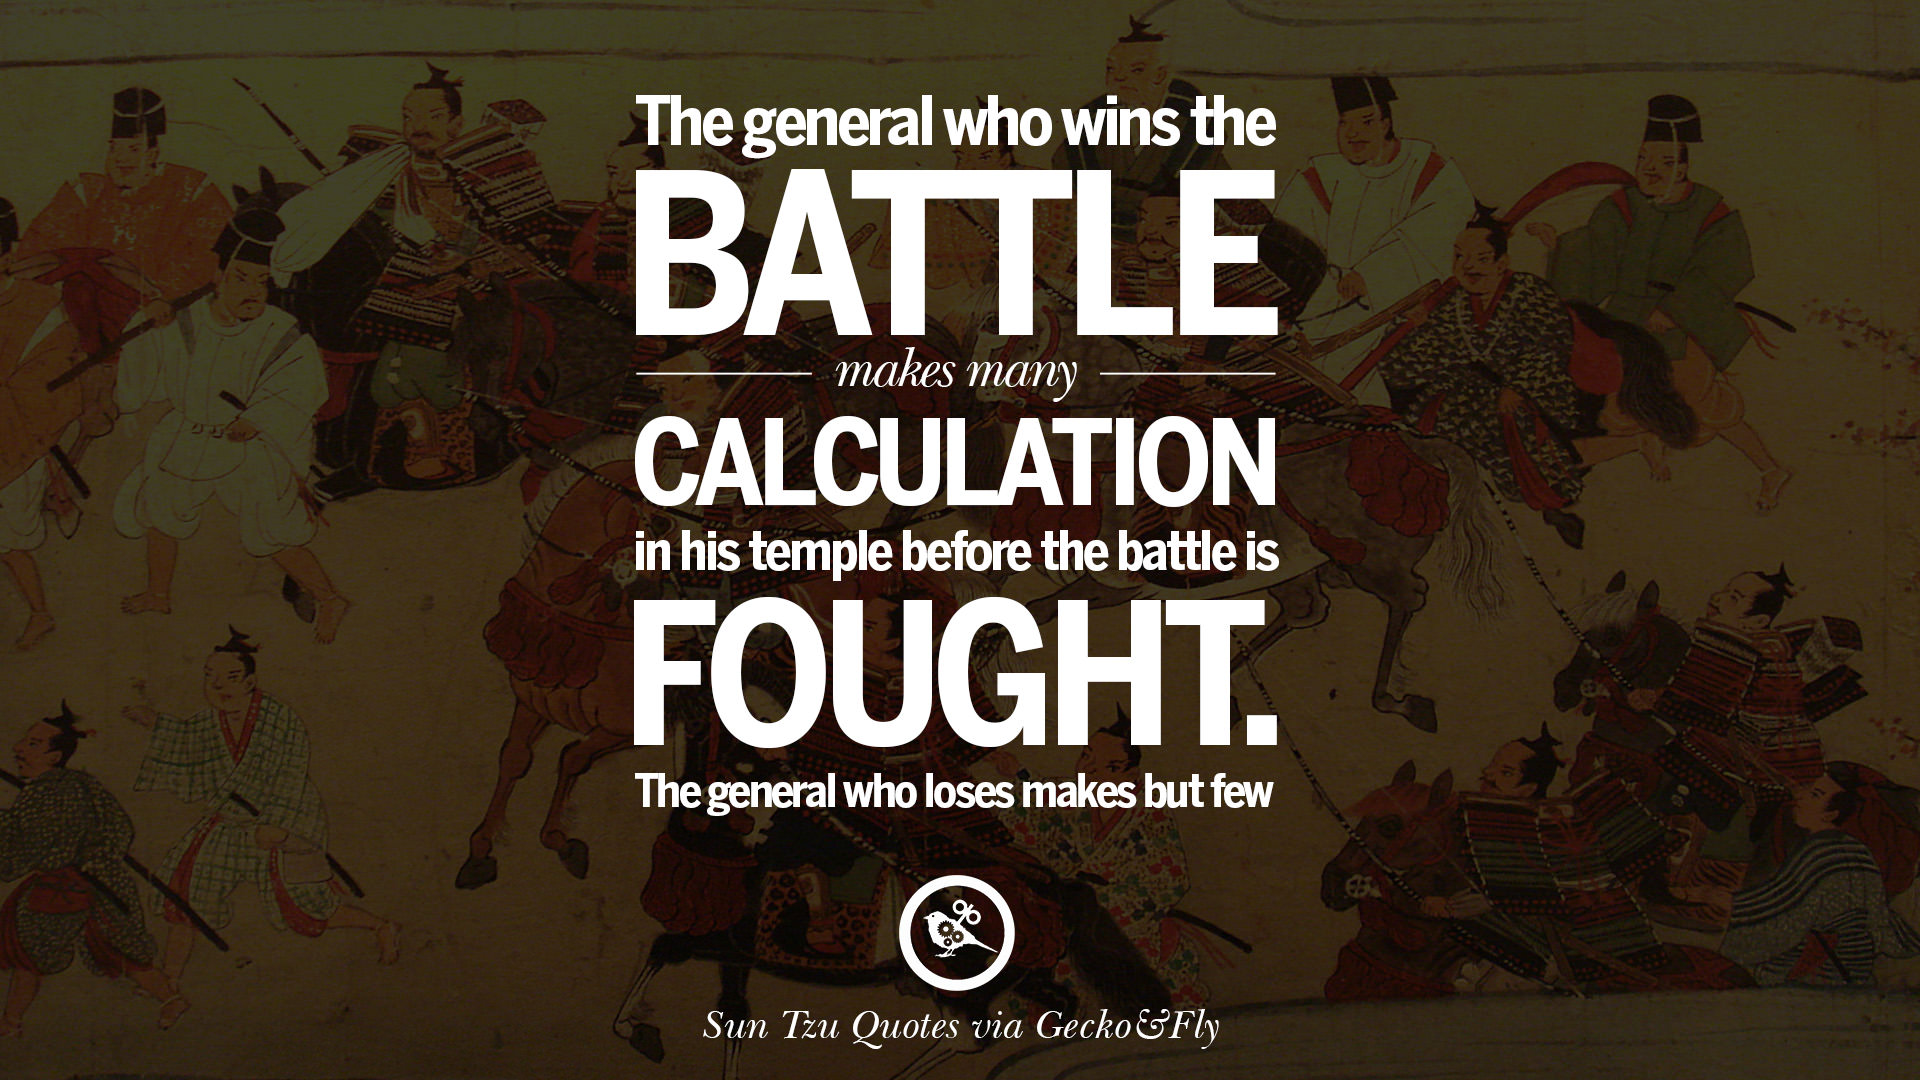 sun tzu: the art of war essay The art of war was written by a chinese general named sun tzu more than 2,500 years ago, possibly in the 6th century bc the book has long been heralded for its advice on military success.